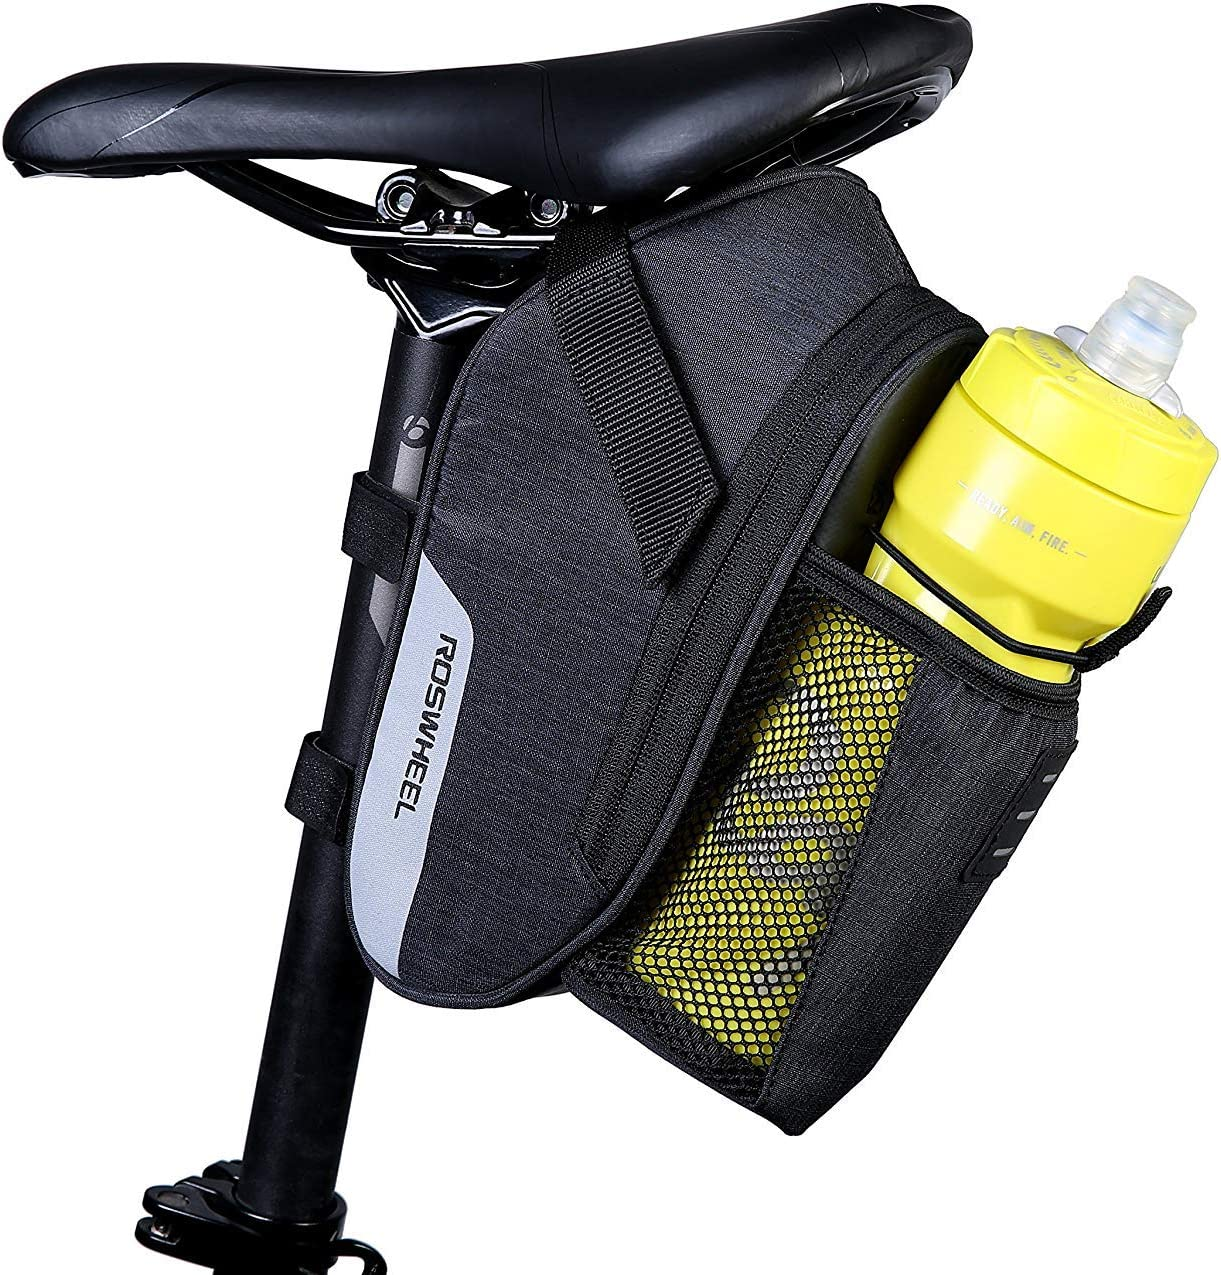 Amazon Com Roswheel Essentials Series 131464 Water Resistant Bike Saddle Bag Bicycle Under Seat Pack Cycling Accessories Pouch With Water Bottle Holder Sports Outdoors